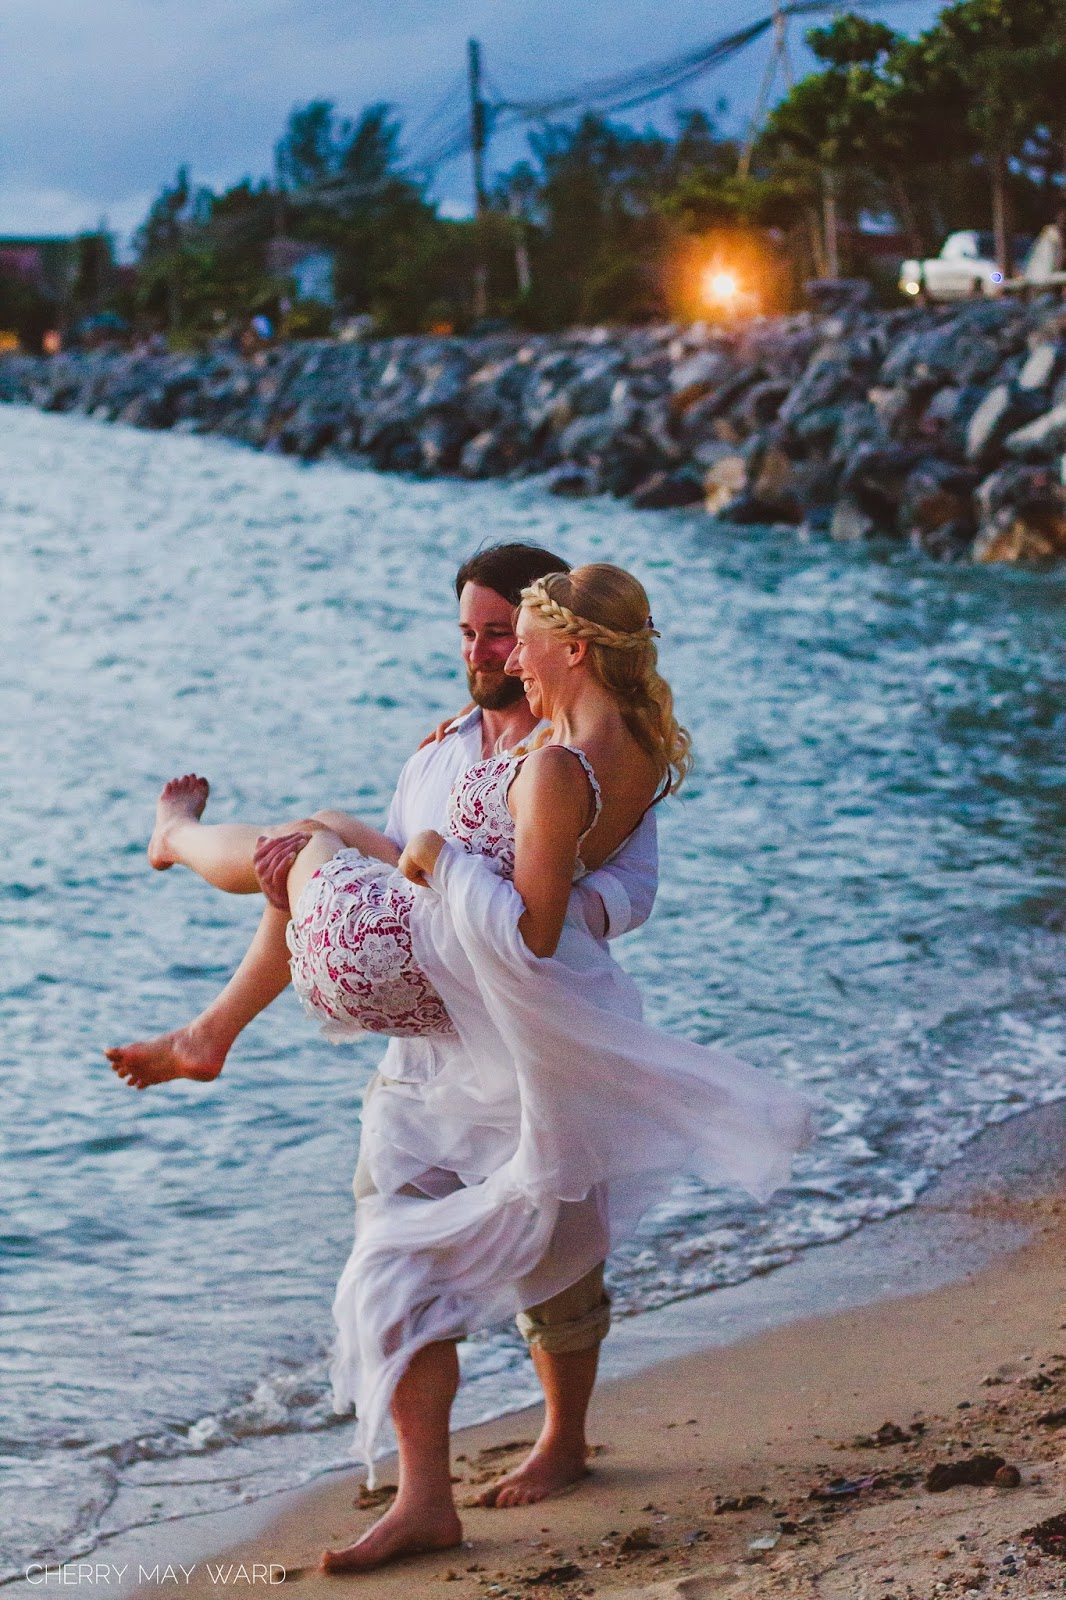 groom carrying bride along the beach, beautiful photos, intimate wedding portraits on Koh Samui, wedding photos on the beach after sunset,  bride and groom having fun on the beach, bride and groom being themselves, just married couple walking on the beach, groom carrying the bride, Cherry May Ward Photography